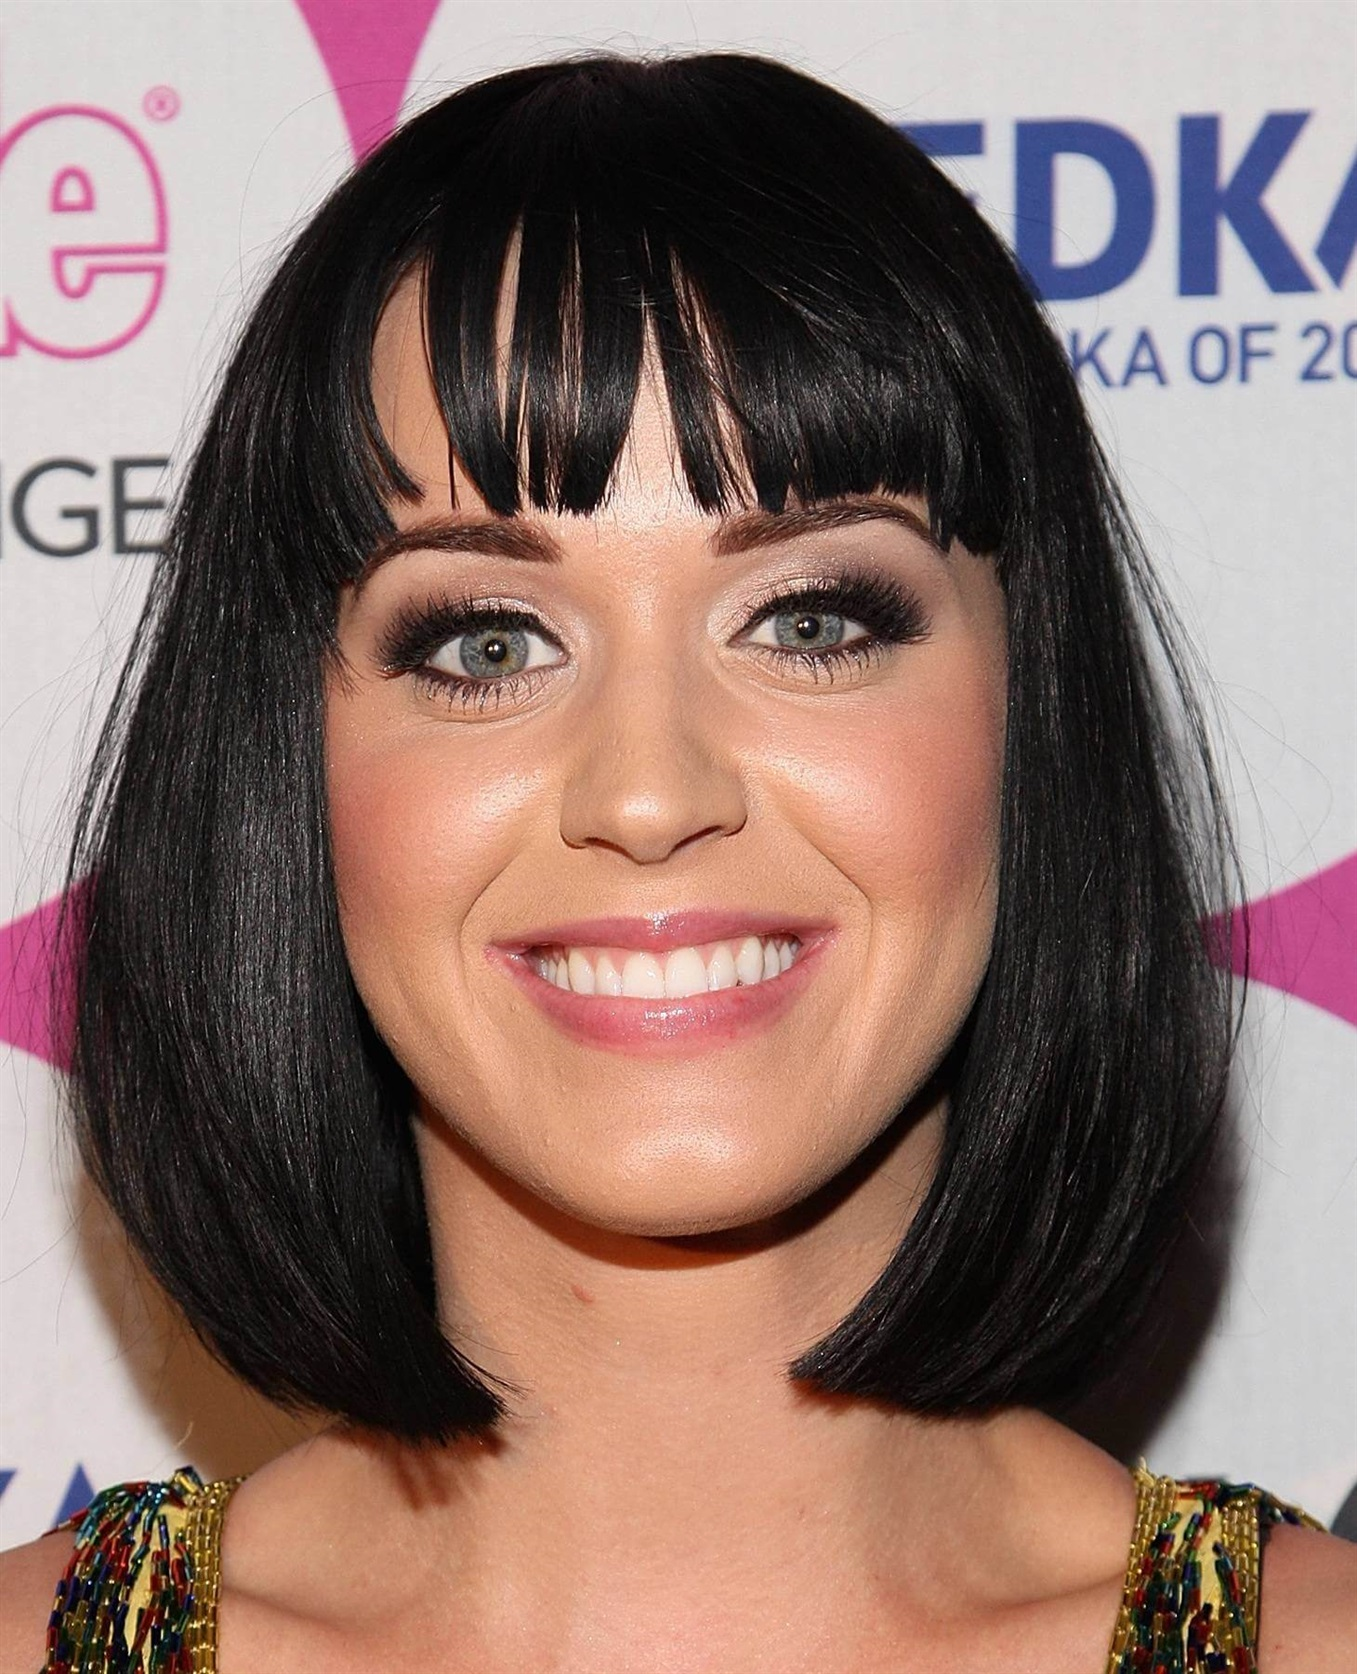 Bob Hairstyles 2021 Katy Perry Our suggestion for a bob haircut for black and bangs is again from Katy. You can definitely be brave too. Bob hairstyles are indispensable for women.